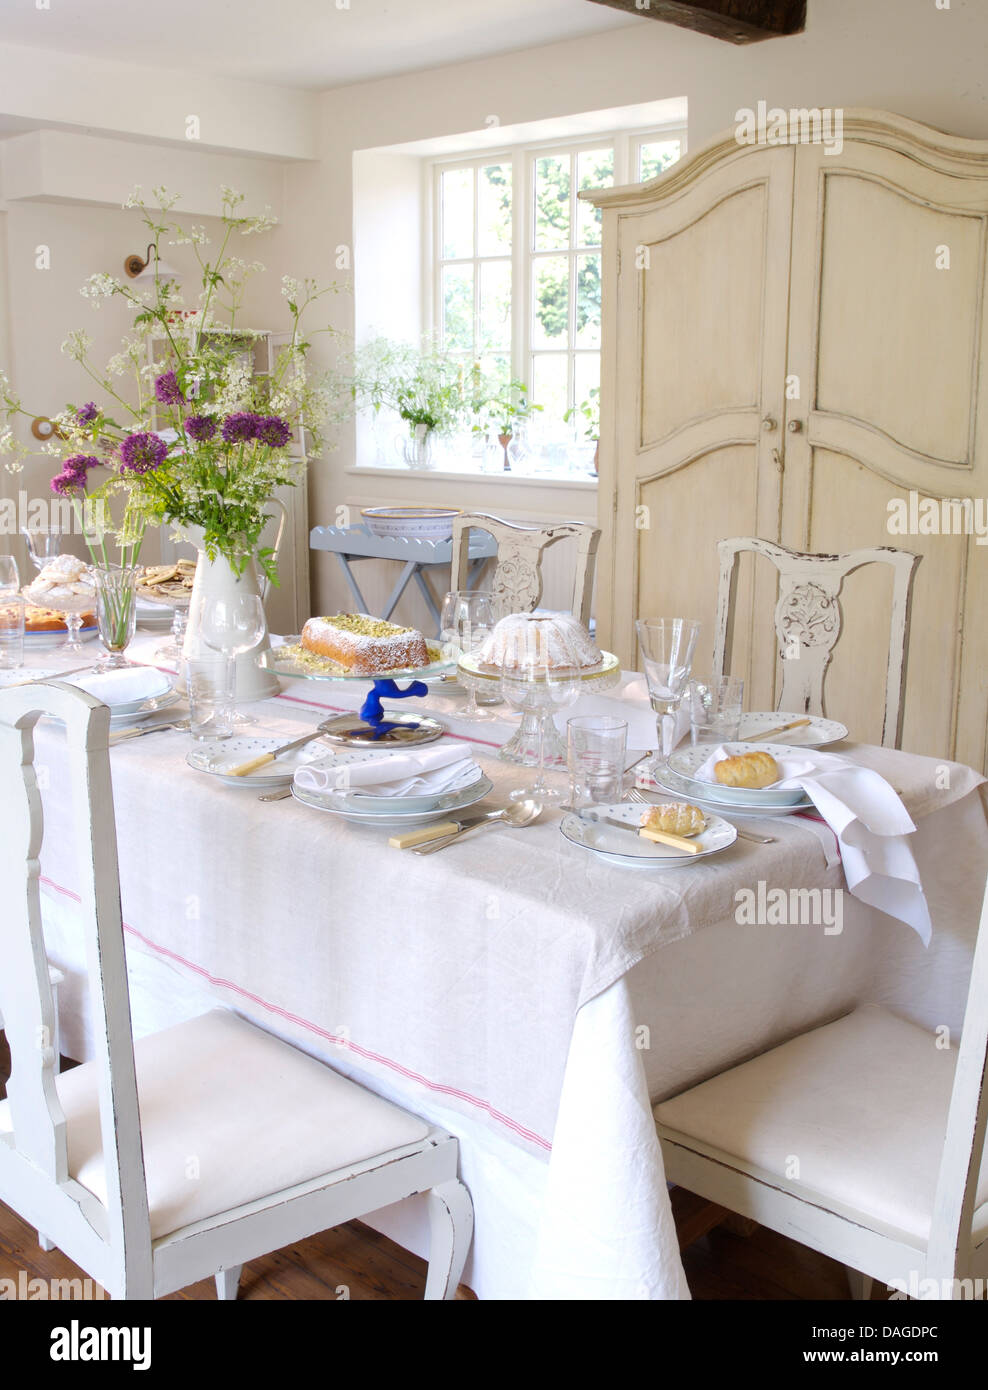 White Linen Cloth On Table Set For Lunch In Country Dining Room With Painted Chairs And Cupboard